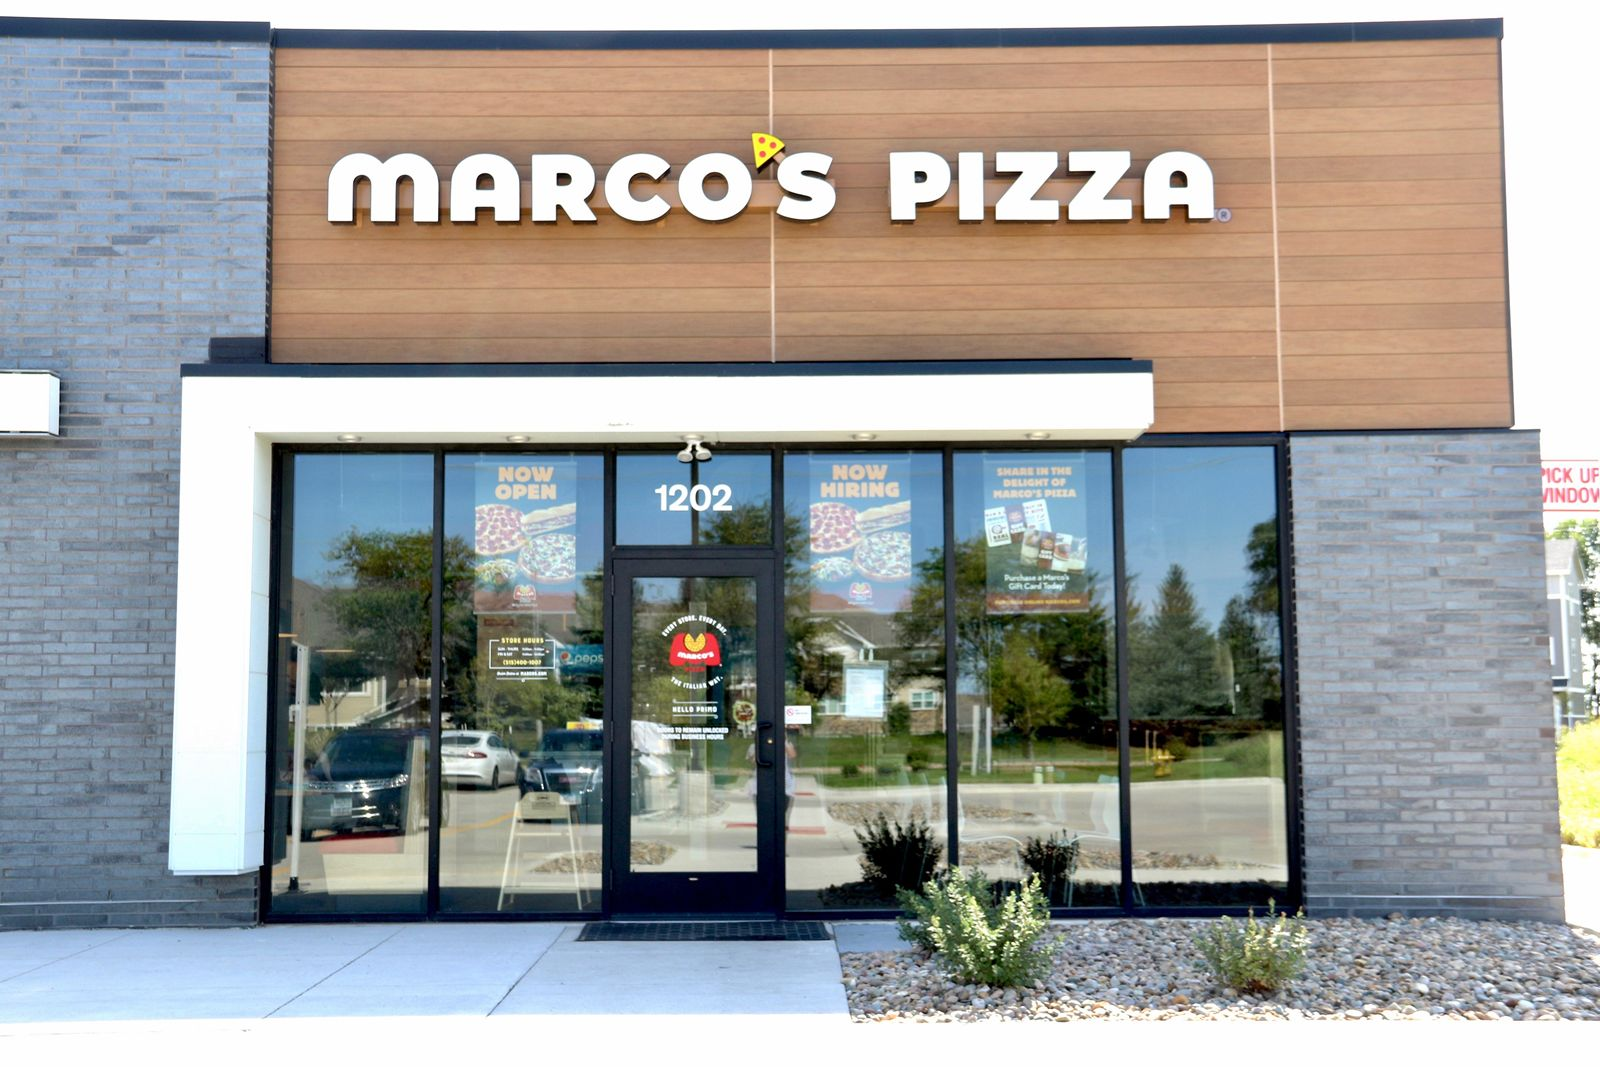 Americans Crown Marco's Pizza Most Loved, Most Trusted Pizza Restaurant Brand of the Year